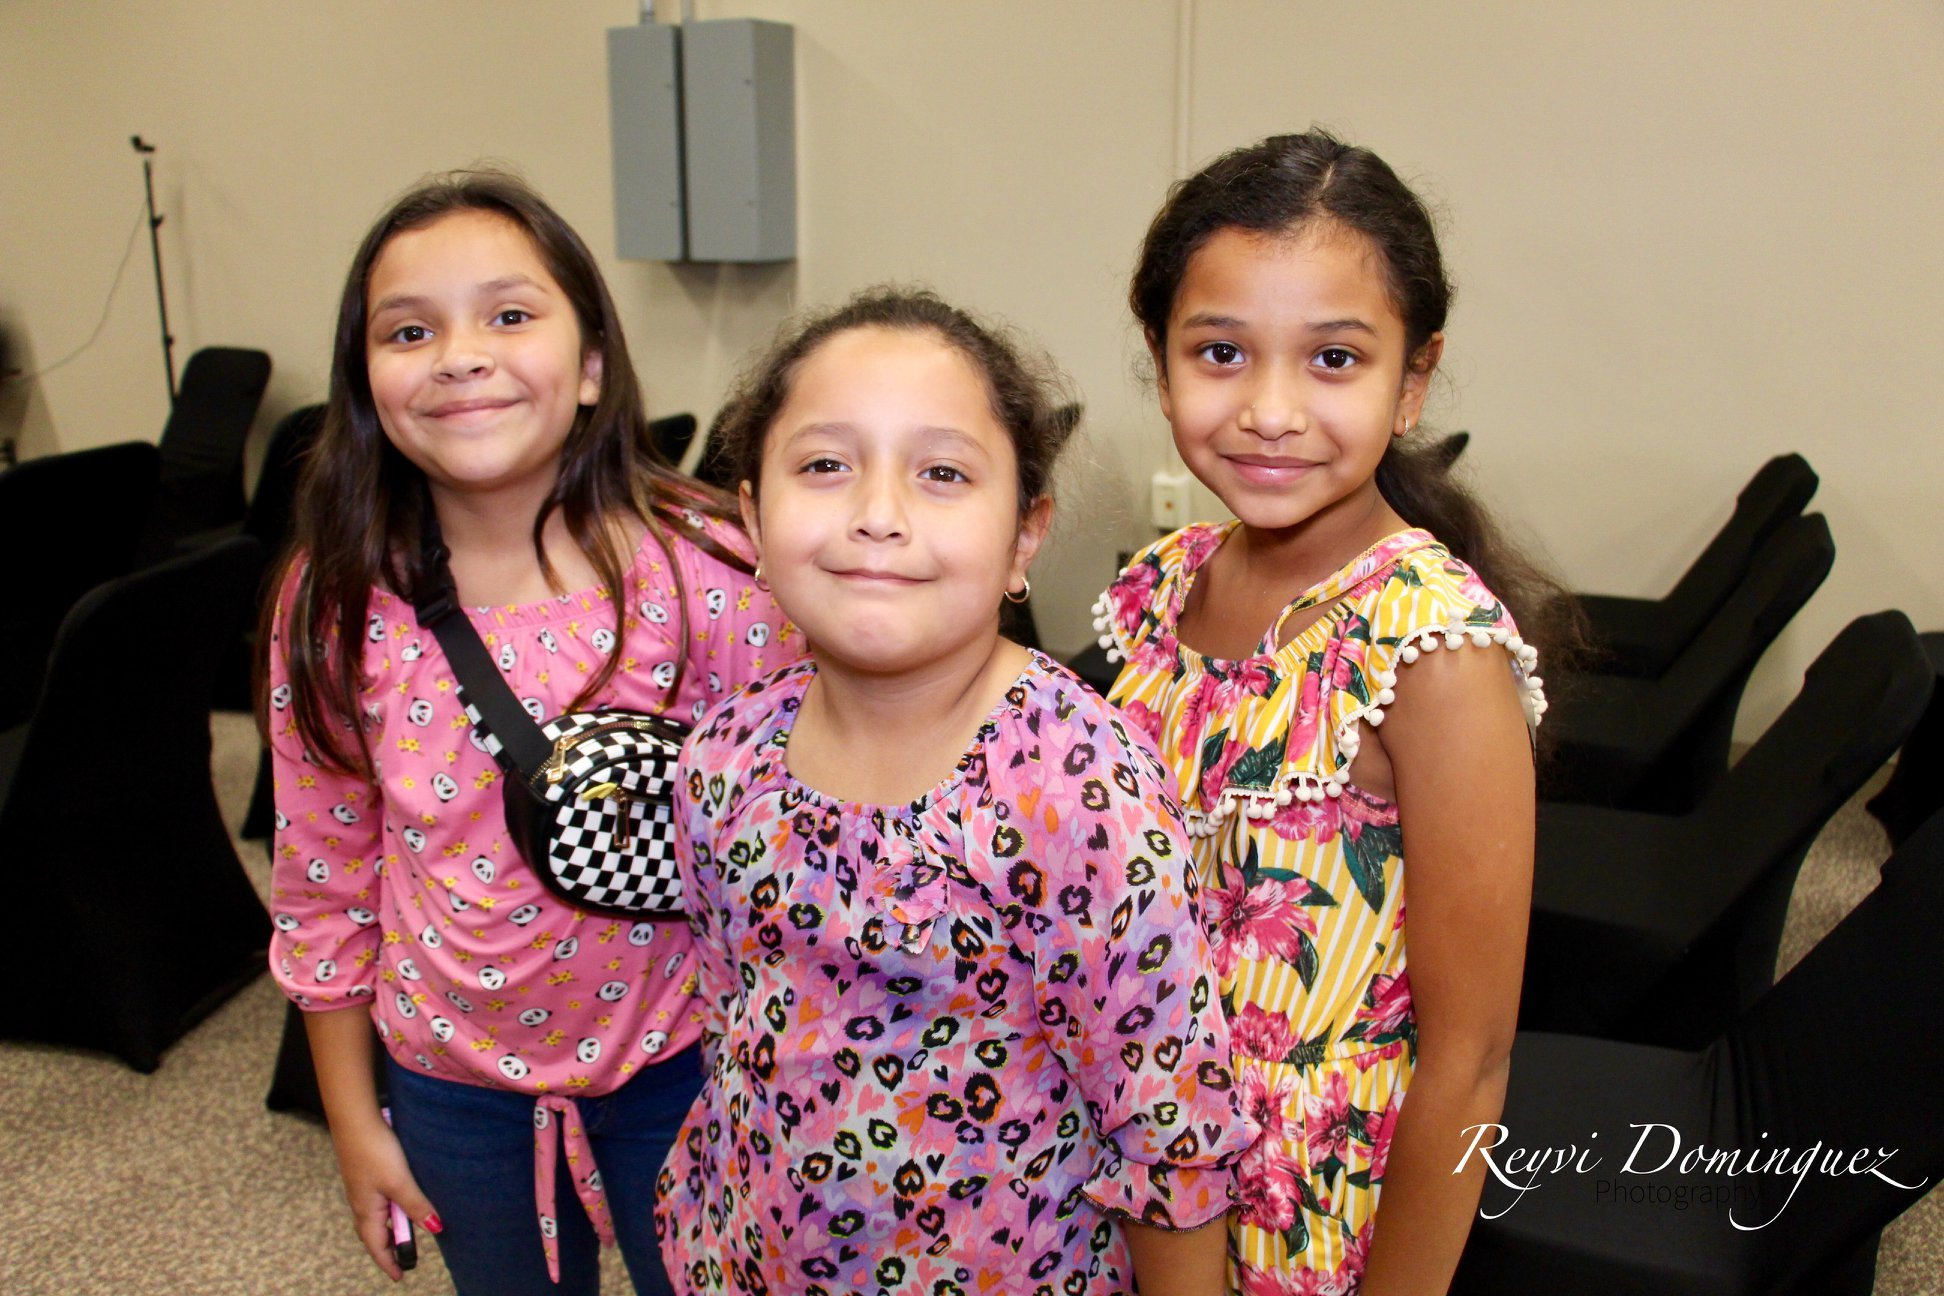 Three young girls